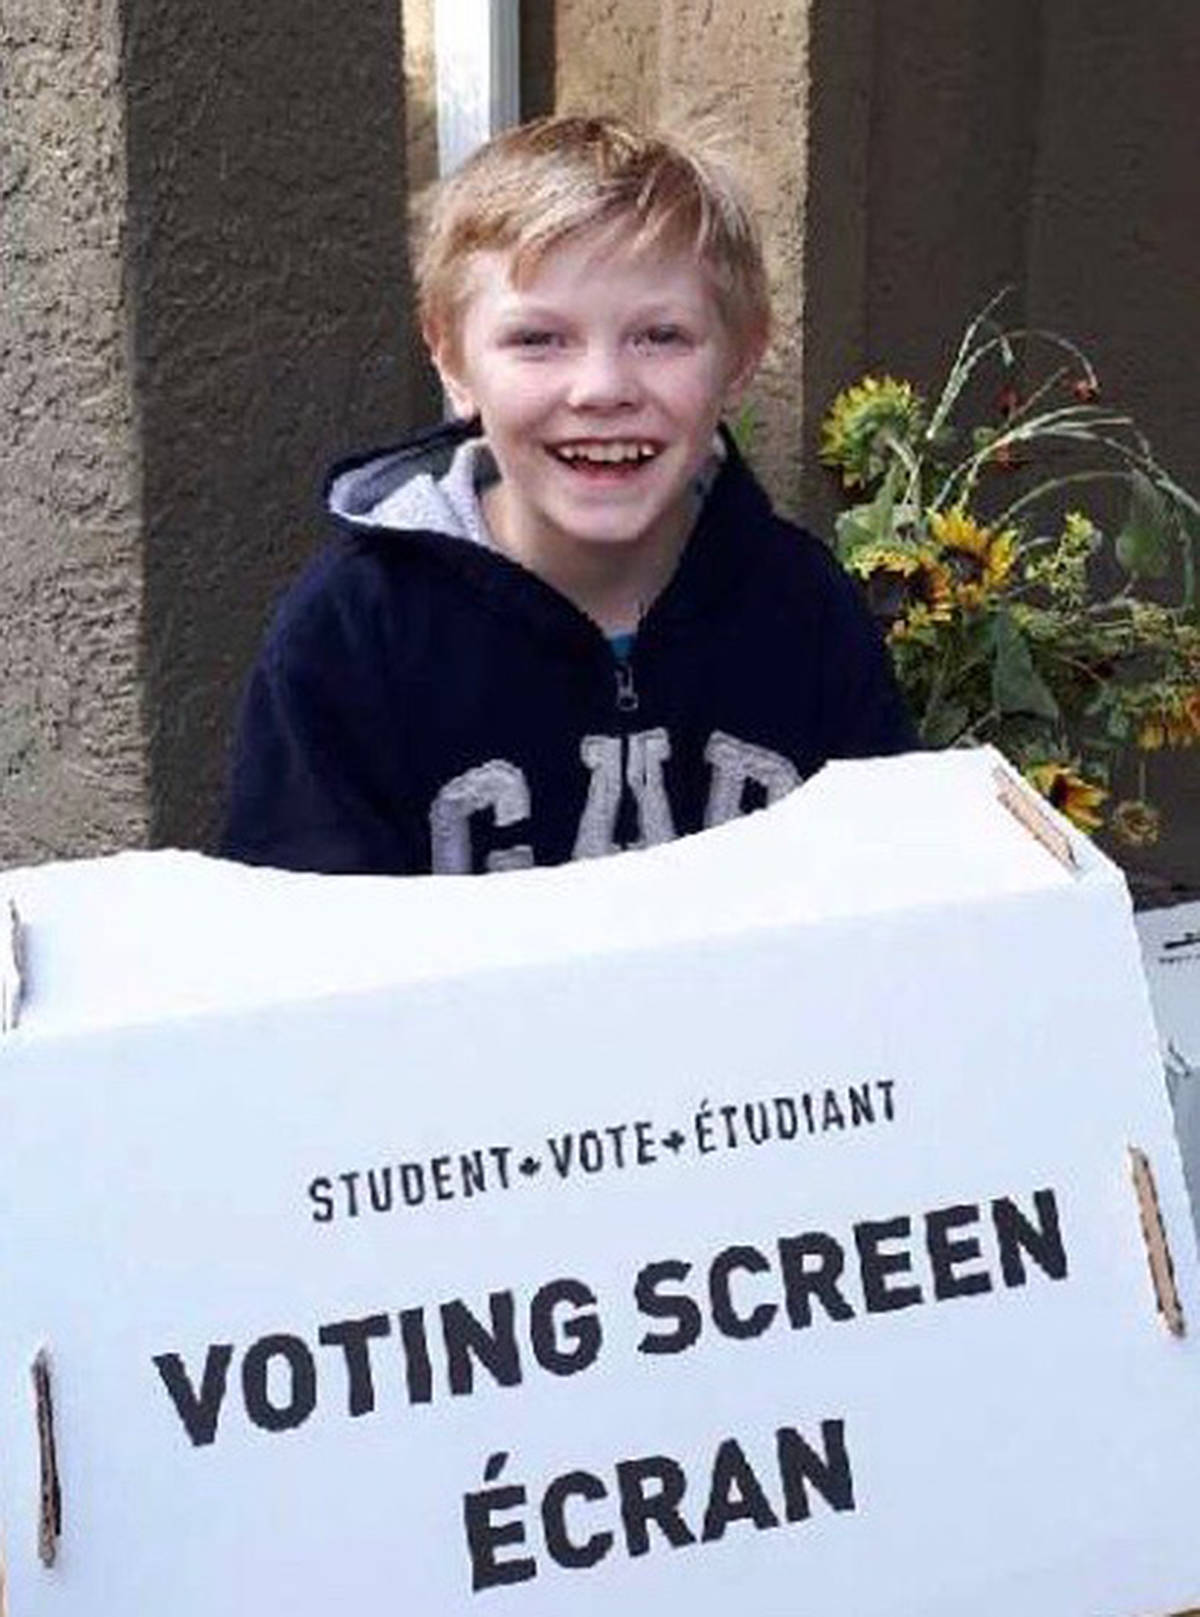 Ajay Teschier, eight, was all smiles after he voted in an impromptu mock election in Brookswood Thursday. (Special to the Langley Advance)